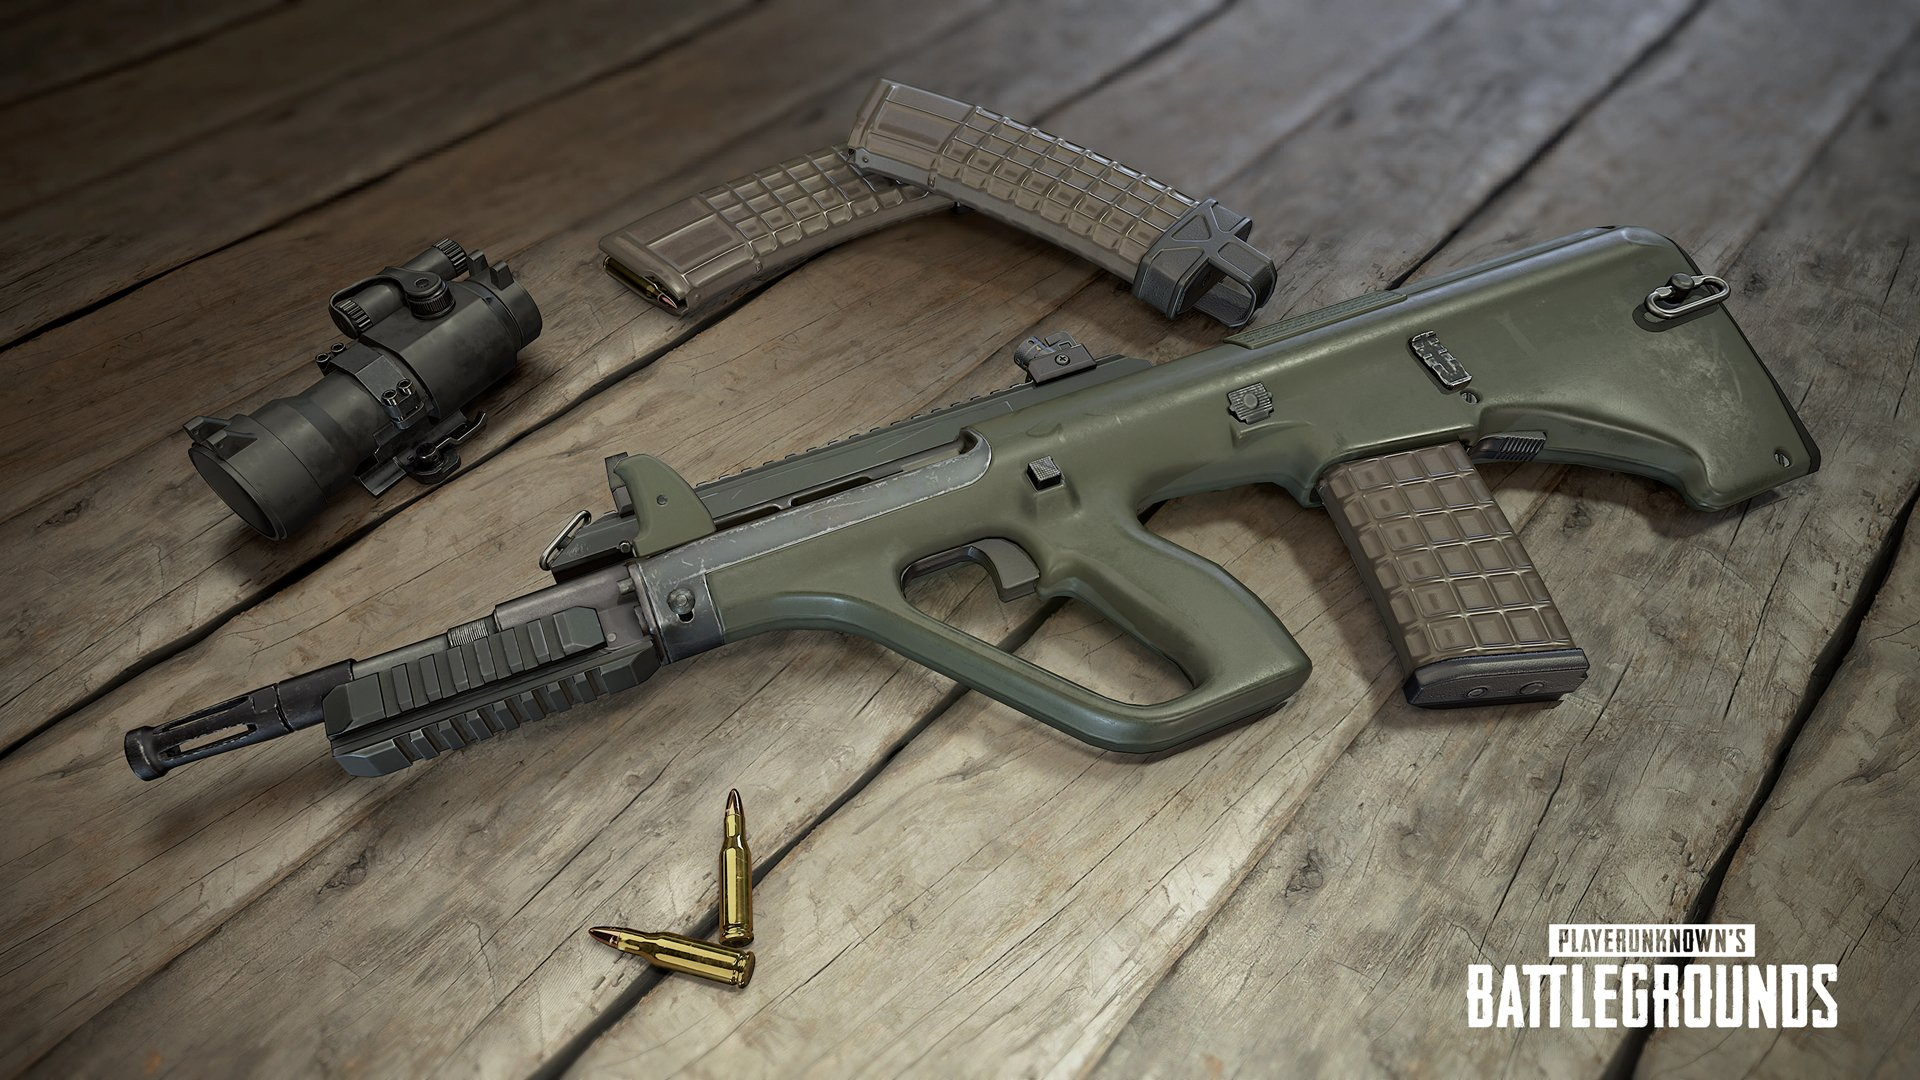 2 New Weapons Coming To Playerunknown S Battlegrounds: PlayerUnknown's Battlegrounds Is Getting 2 New Weapons